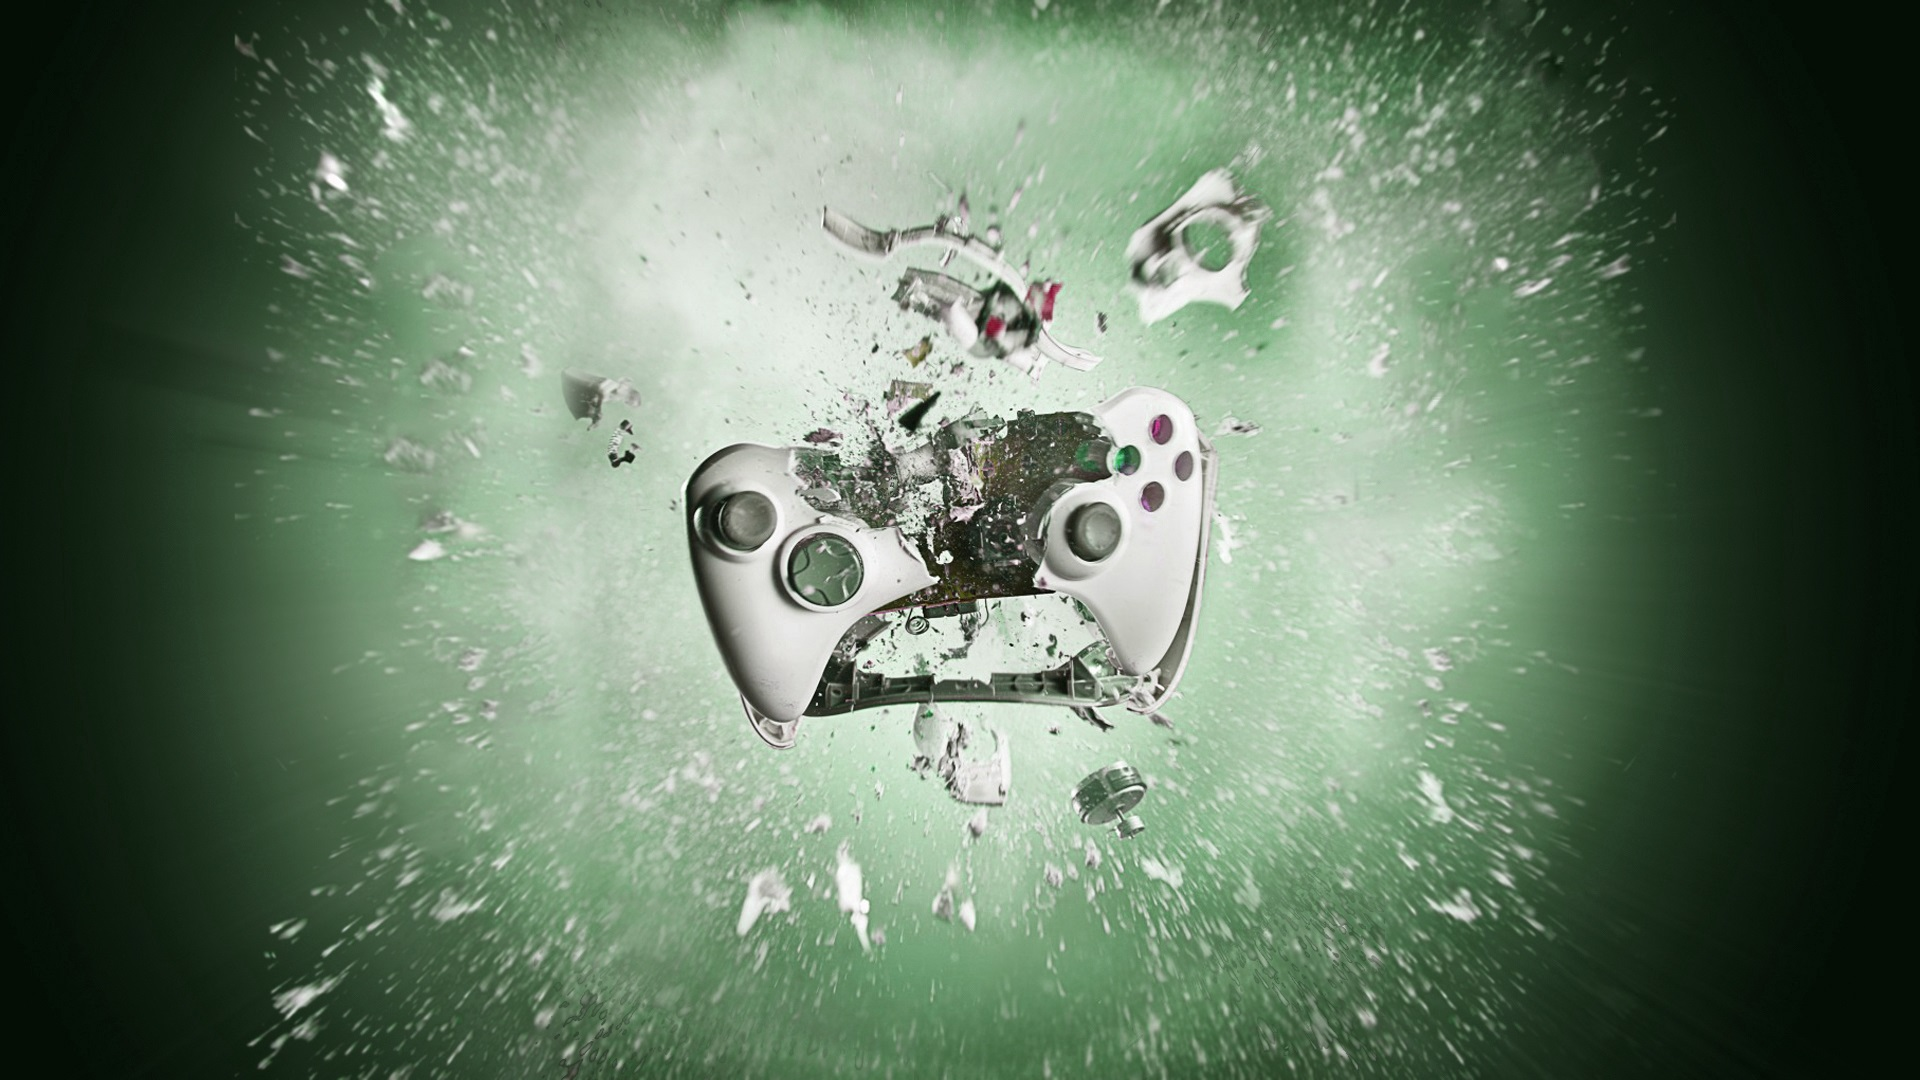 Wallpaper Playstation Gamepad Smashing Into Pieces Creative